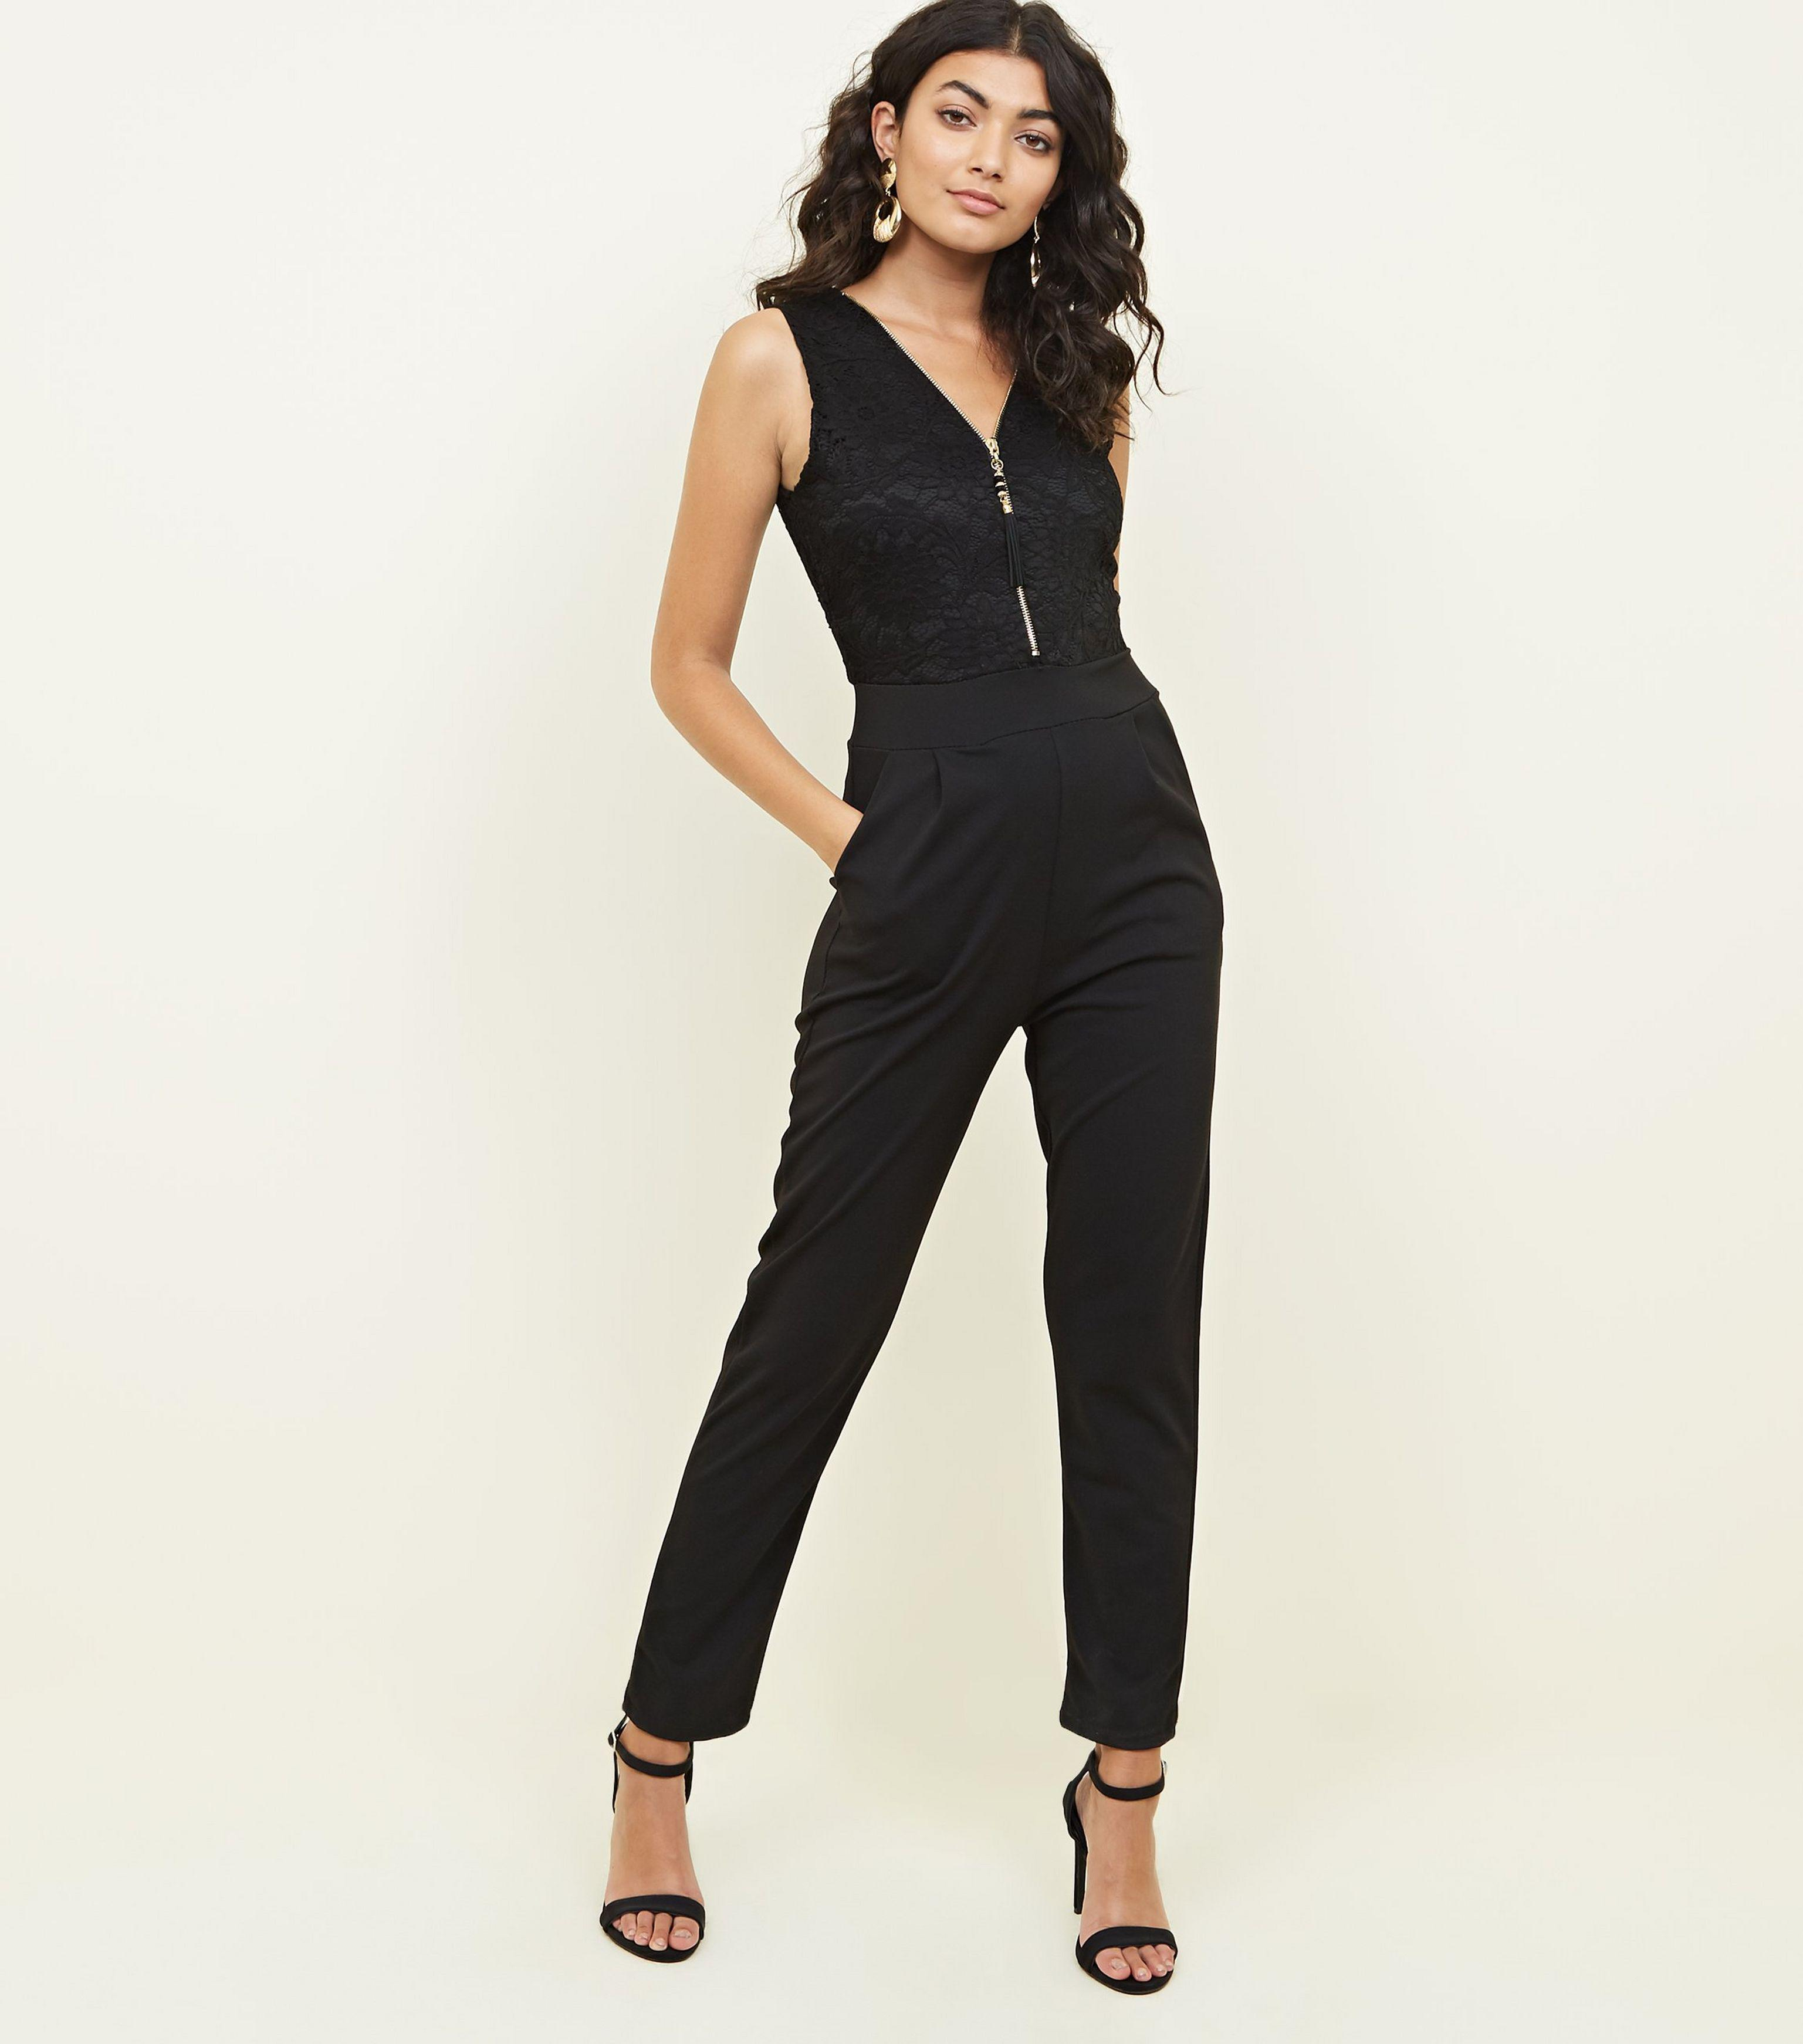 59e94ba6a544 Mela Black Lace Zip Bodice Jumpsuit in Black - Lyst